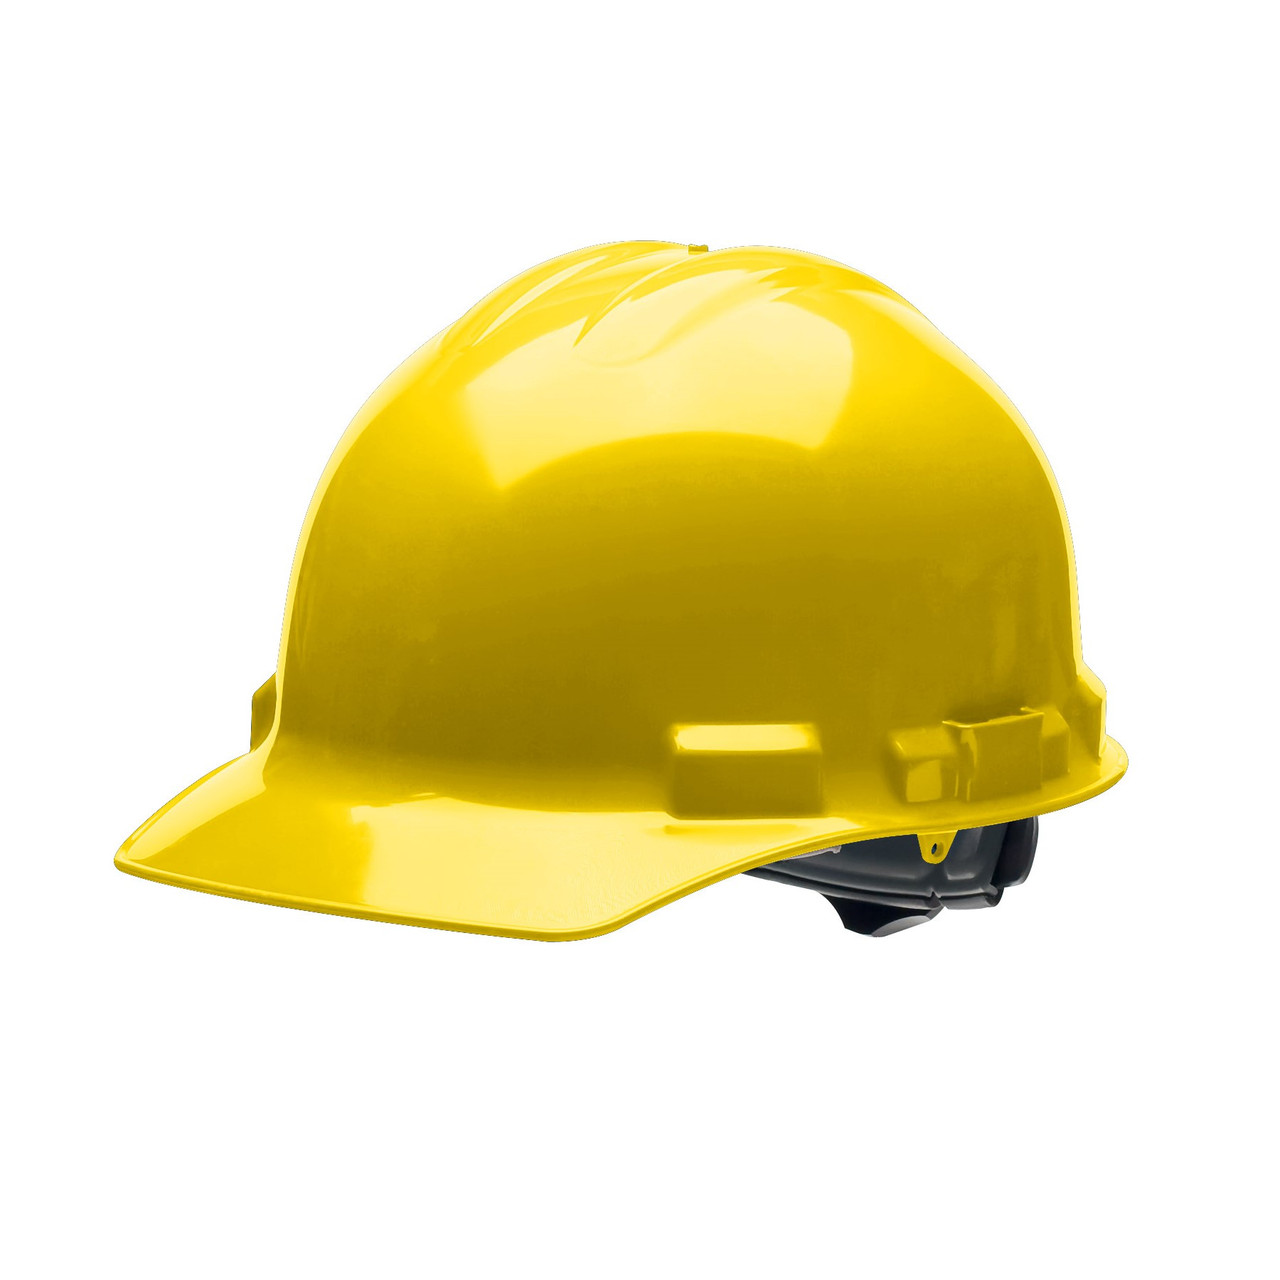 Yellow Hard Hat Helmet Style Made in the USA